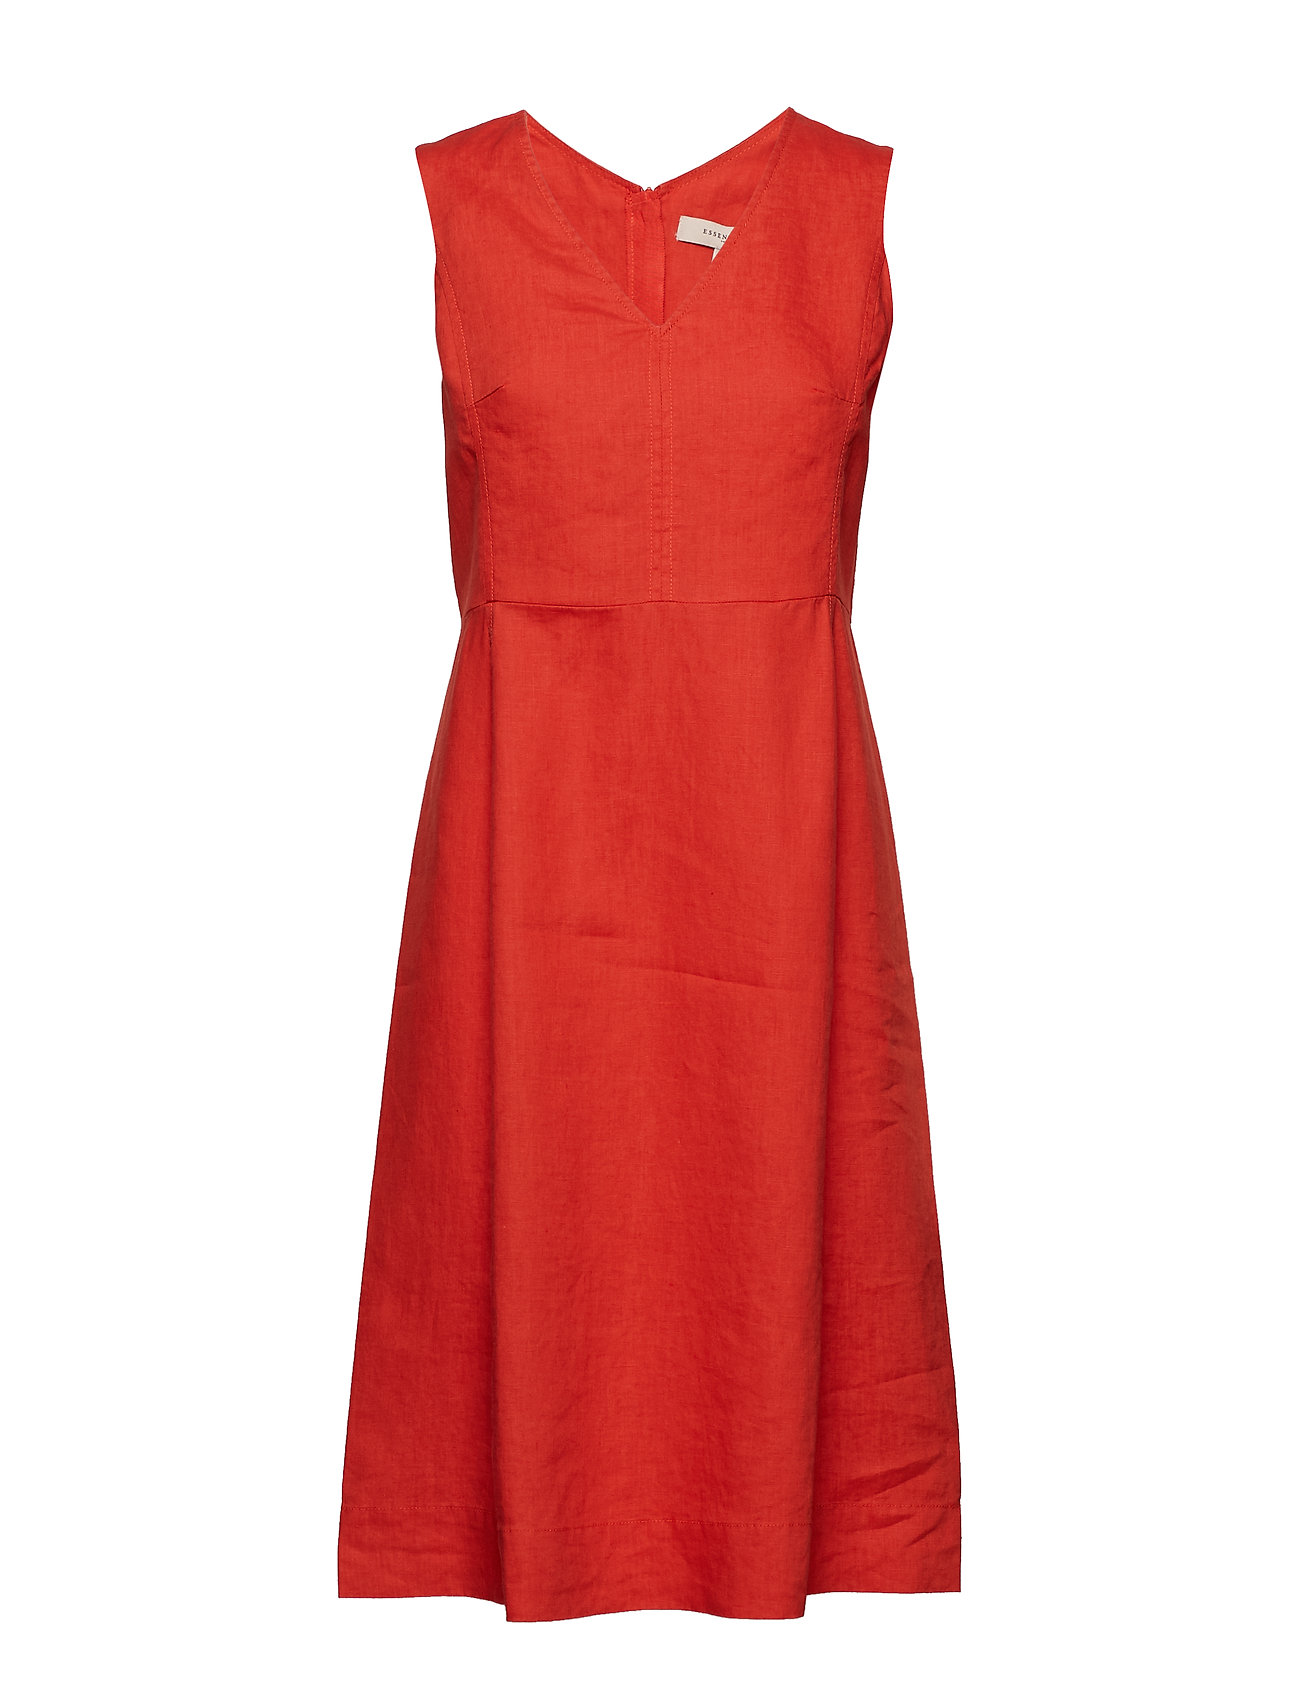 Noa Noa Dress sleeveless - VALIANT POPPY